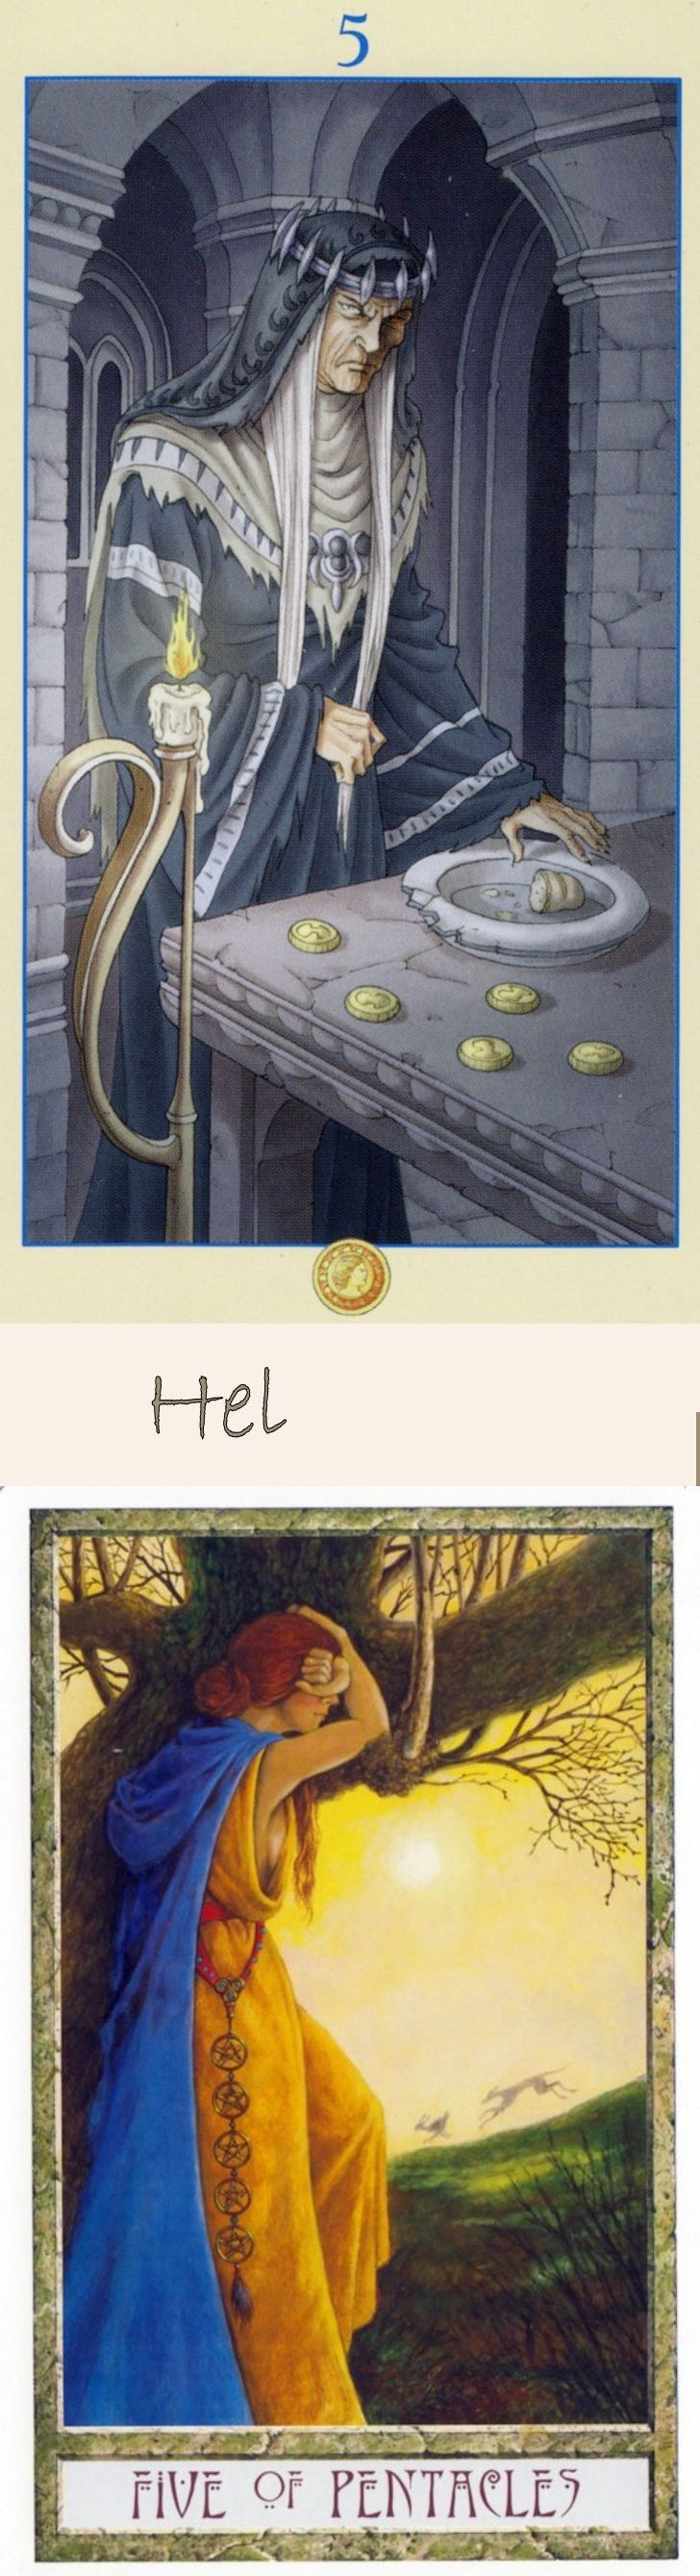 Five of Pentacles: poverty and recovering from poverty (reverse). Universal Goddess Tarot deck and Druid Craft Tarot deck: tarotbeginner, 6 card free tarot and tarotart. New tarot meanings major arcana and witch costume. #thesun #android #iosgame #pagan